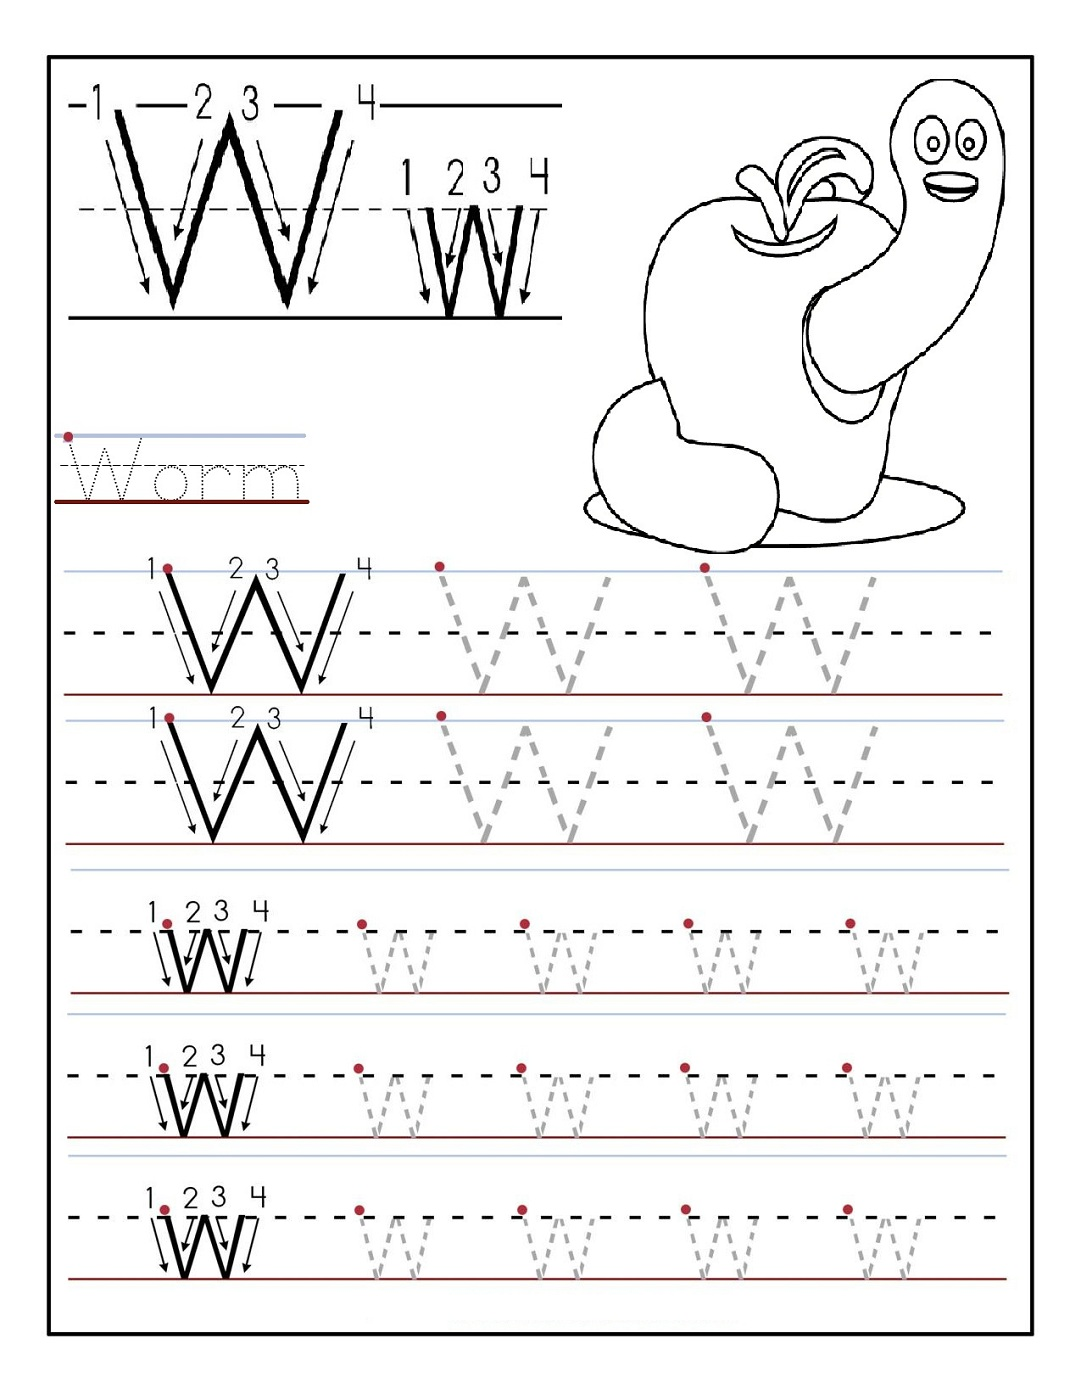 Letter A Worksheets Printable : Kindergarten alphabet worksheets printable activity shelter